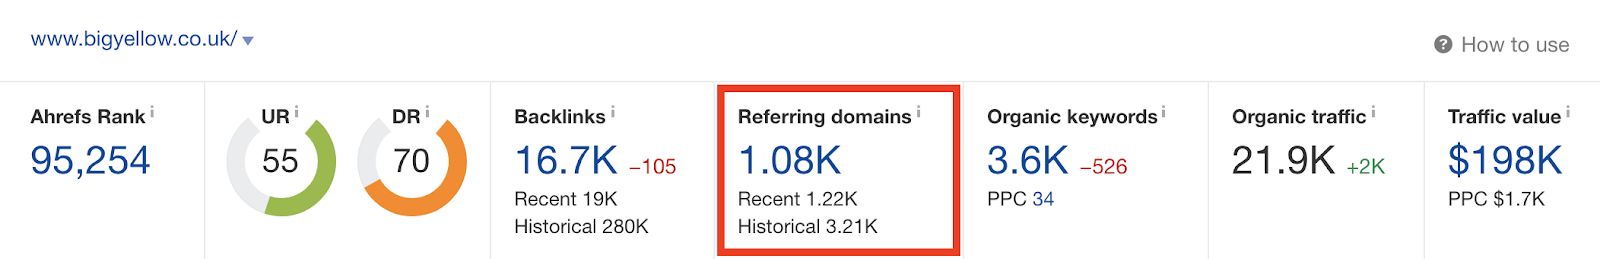 Number of referring domains 2